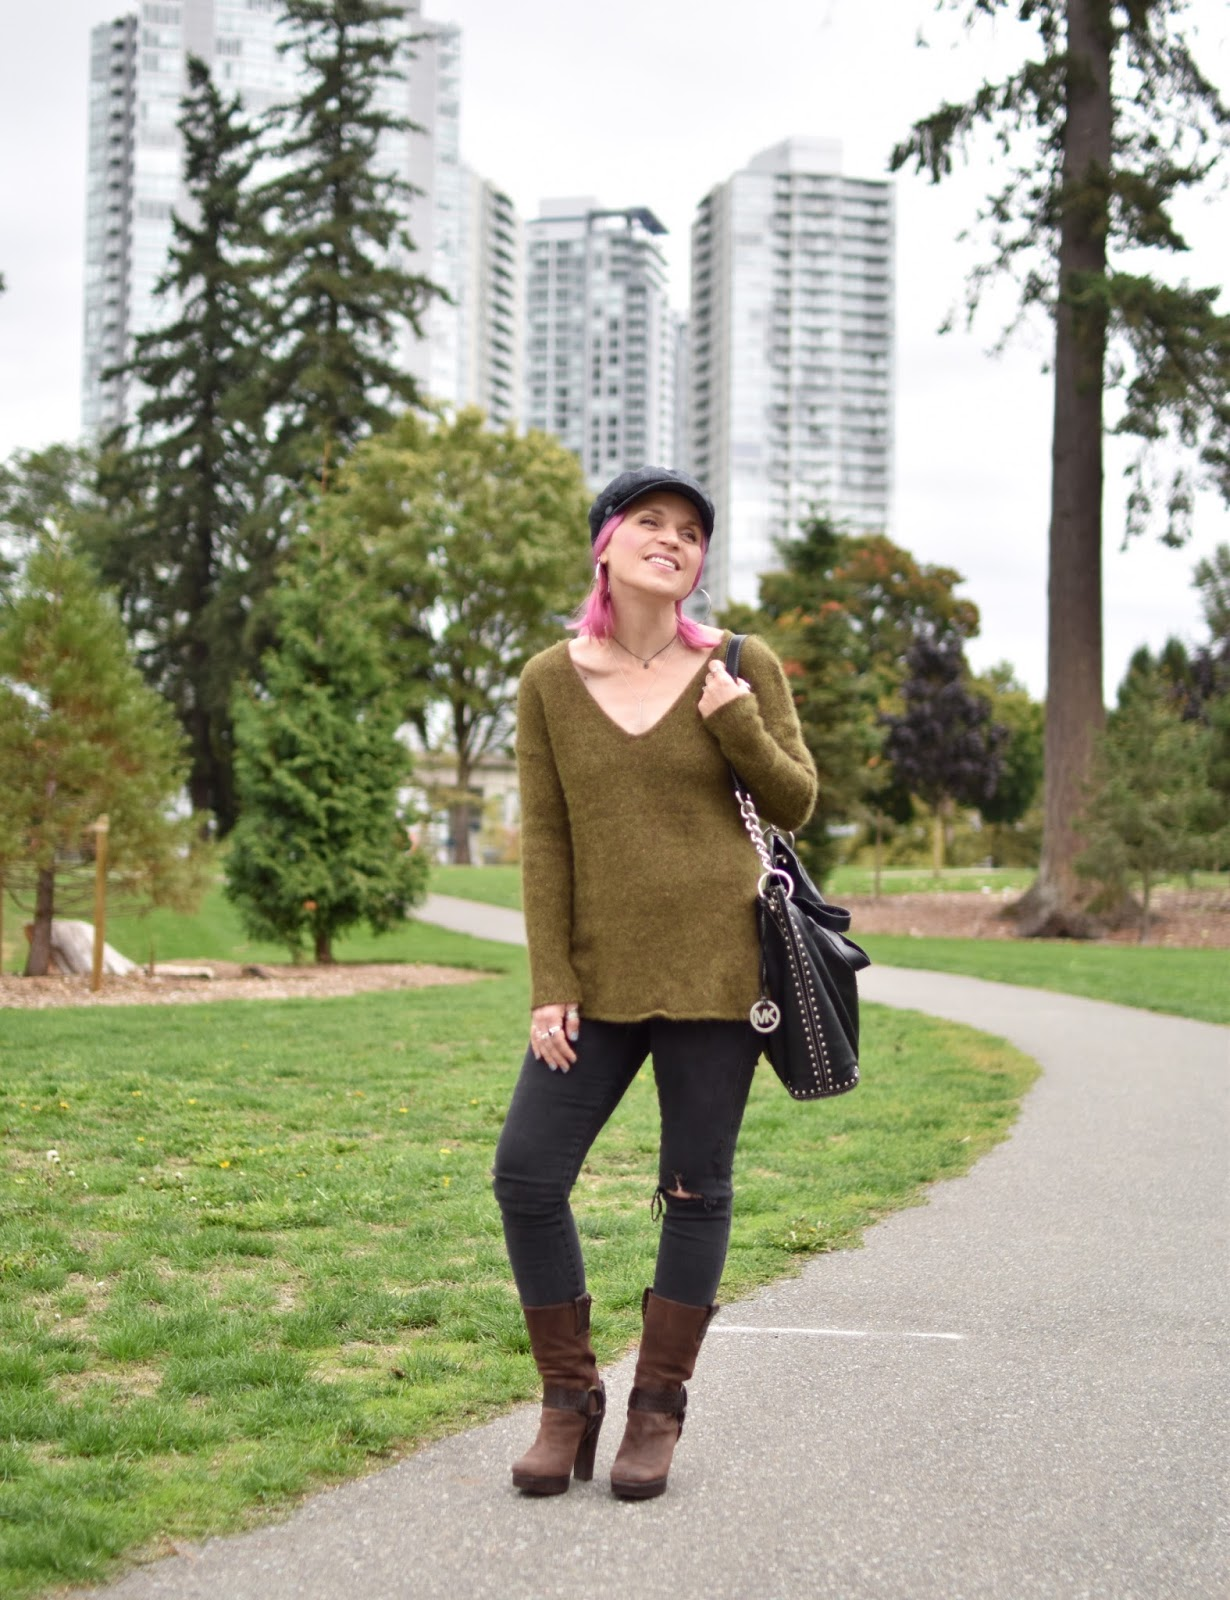 Monika Faulkner outfit inspiration - tunic sweater, distressed skinny jeans, platform harness boots, baker boy cap